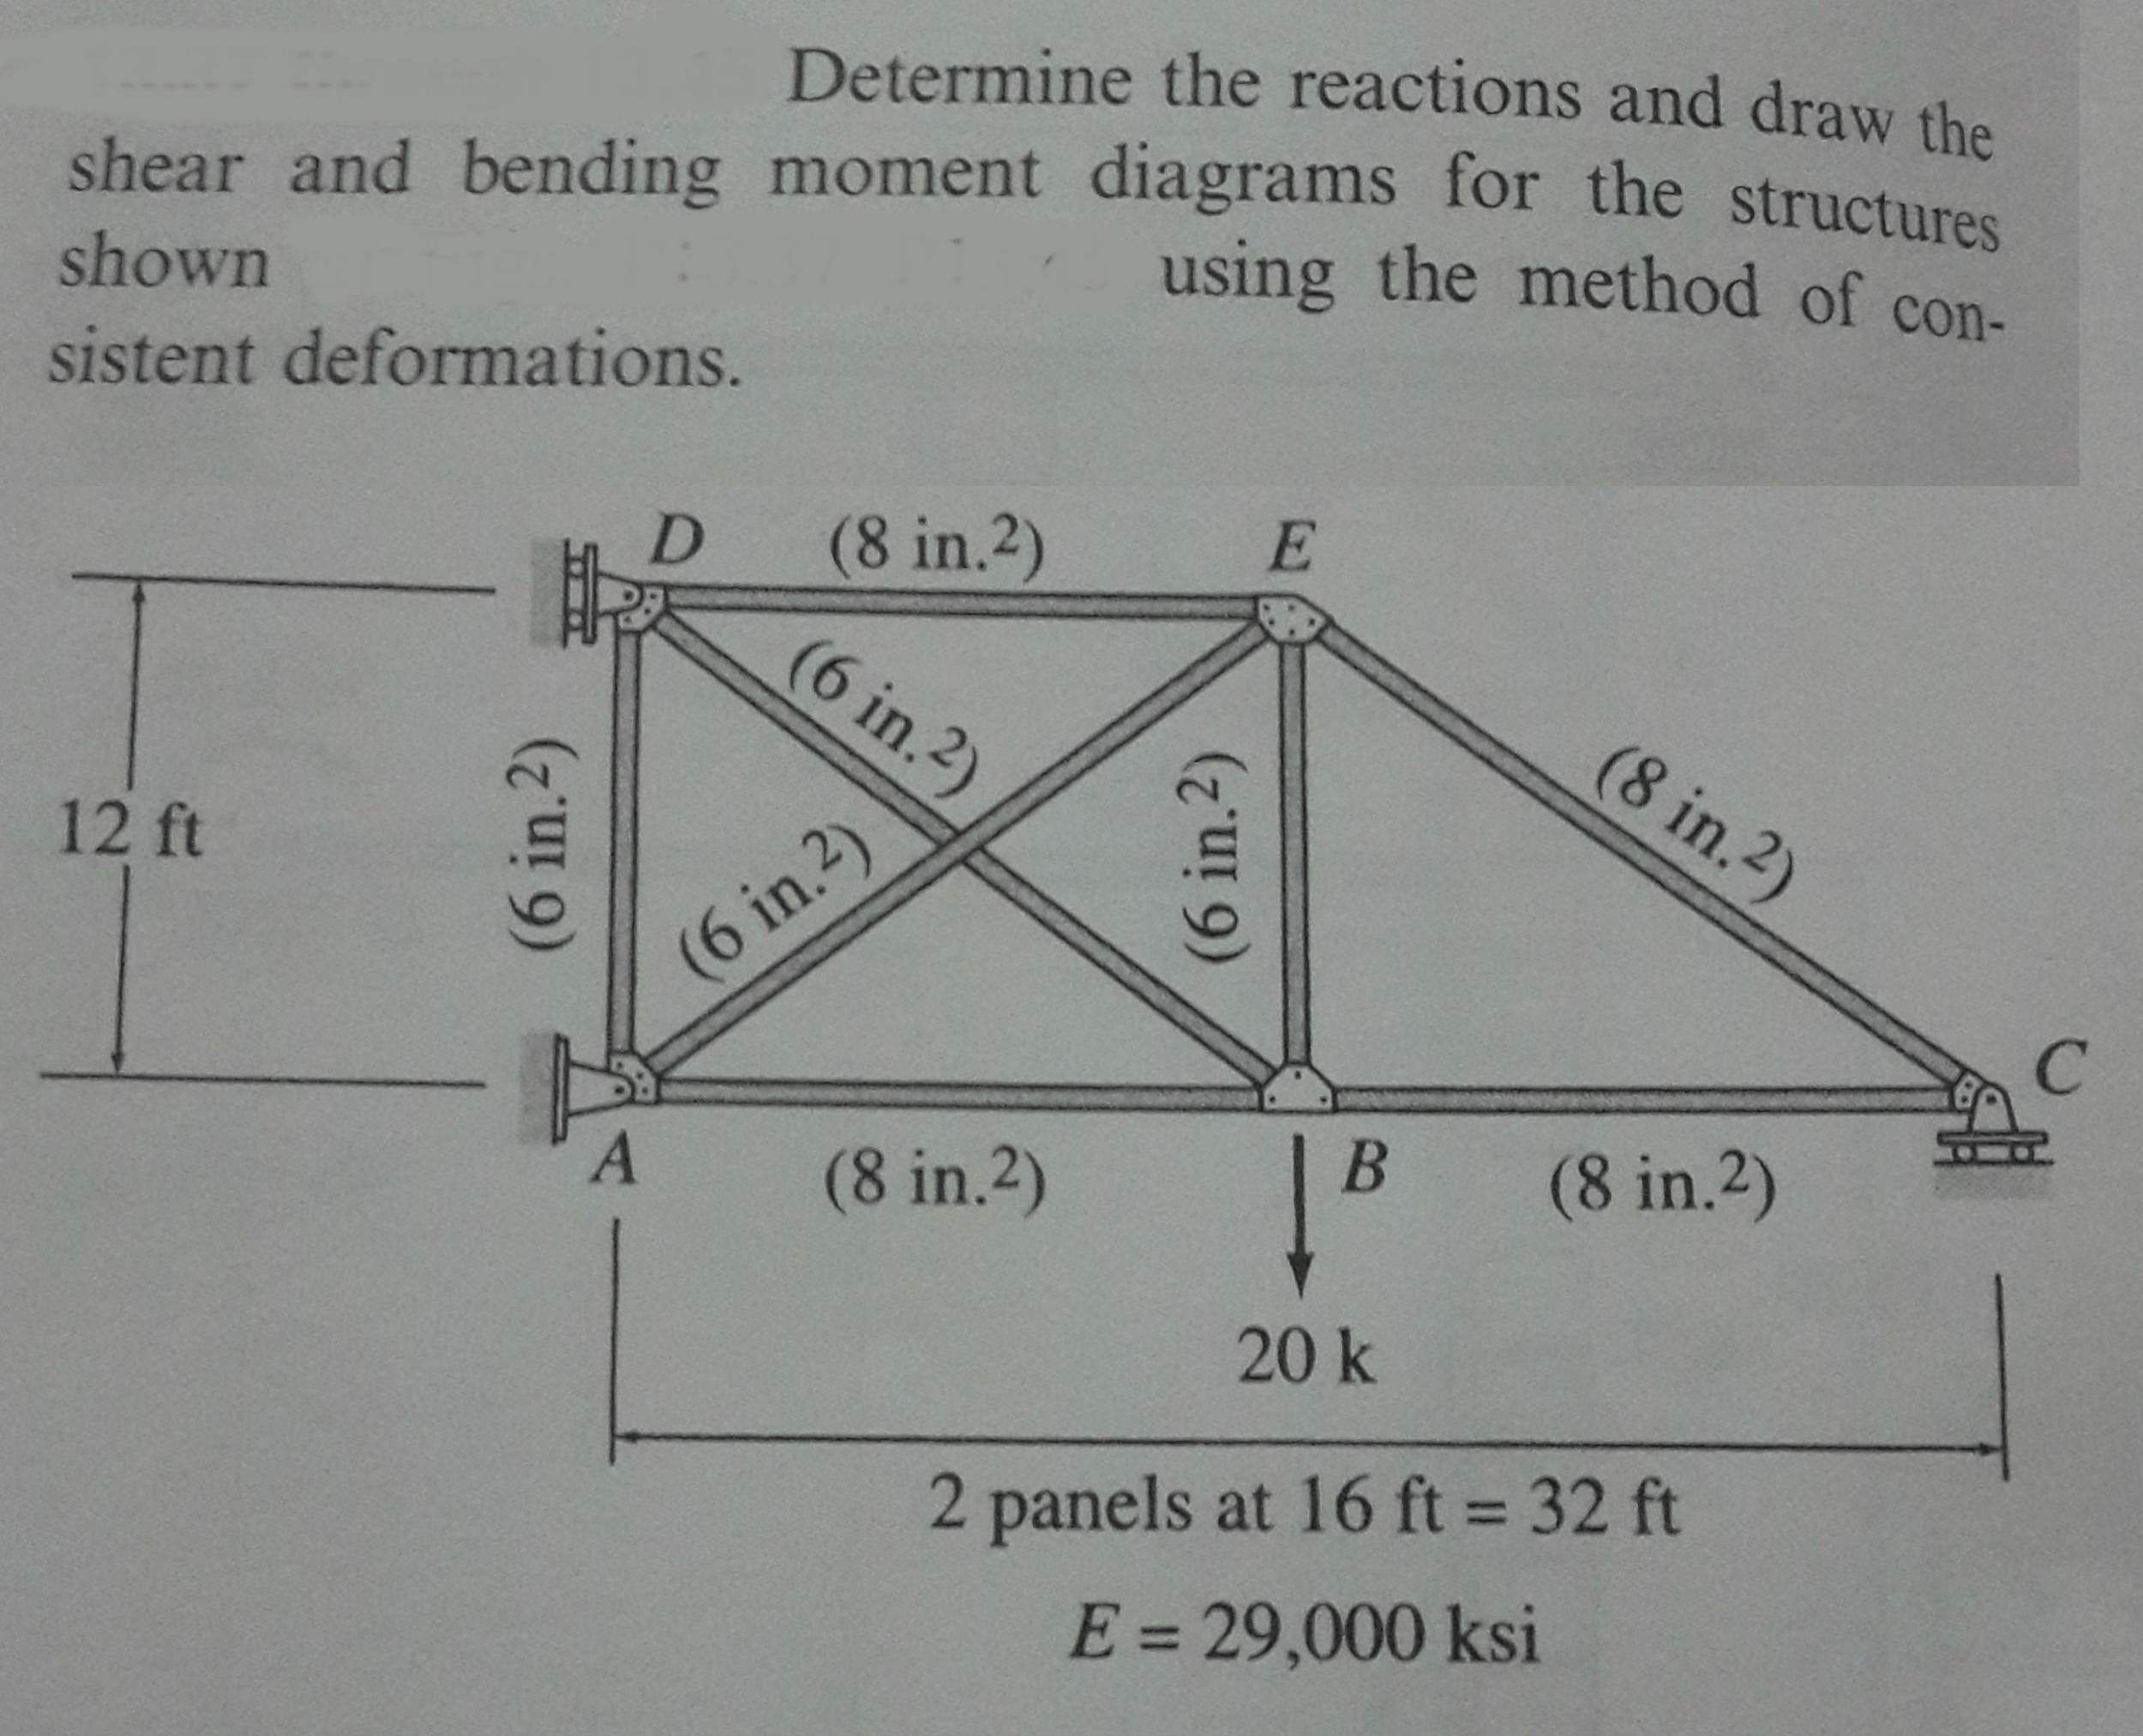 how to draw bending moment diagram rib cage labeled solved determine the reactions and shear ben